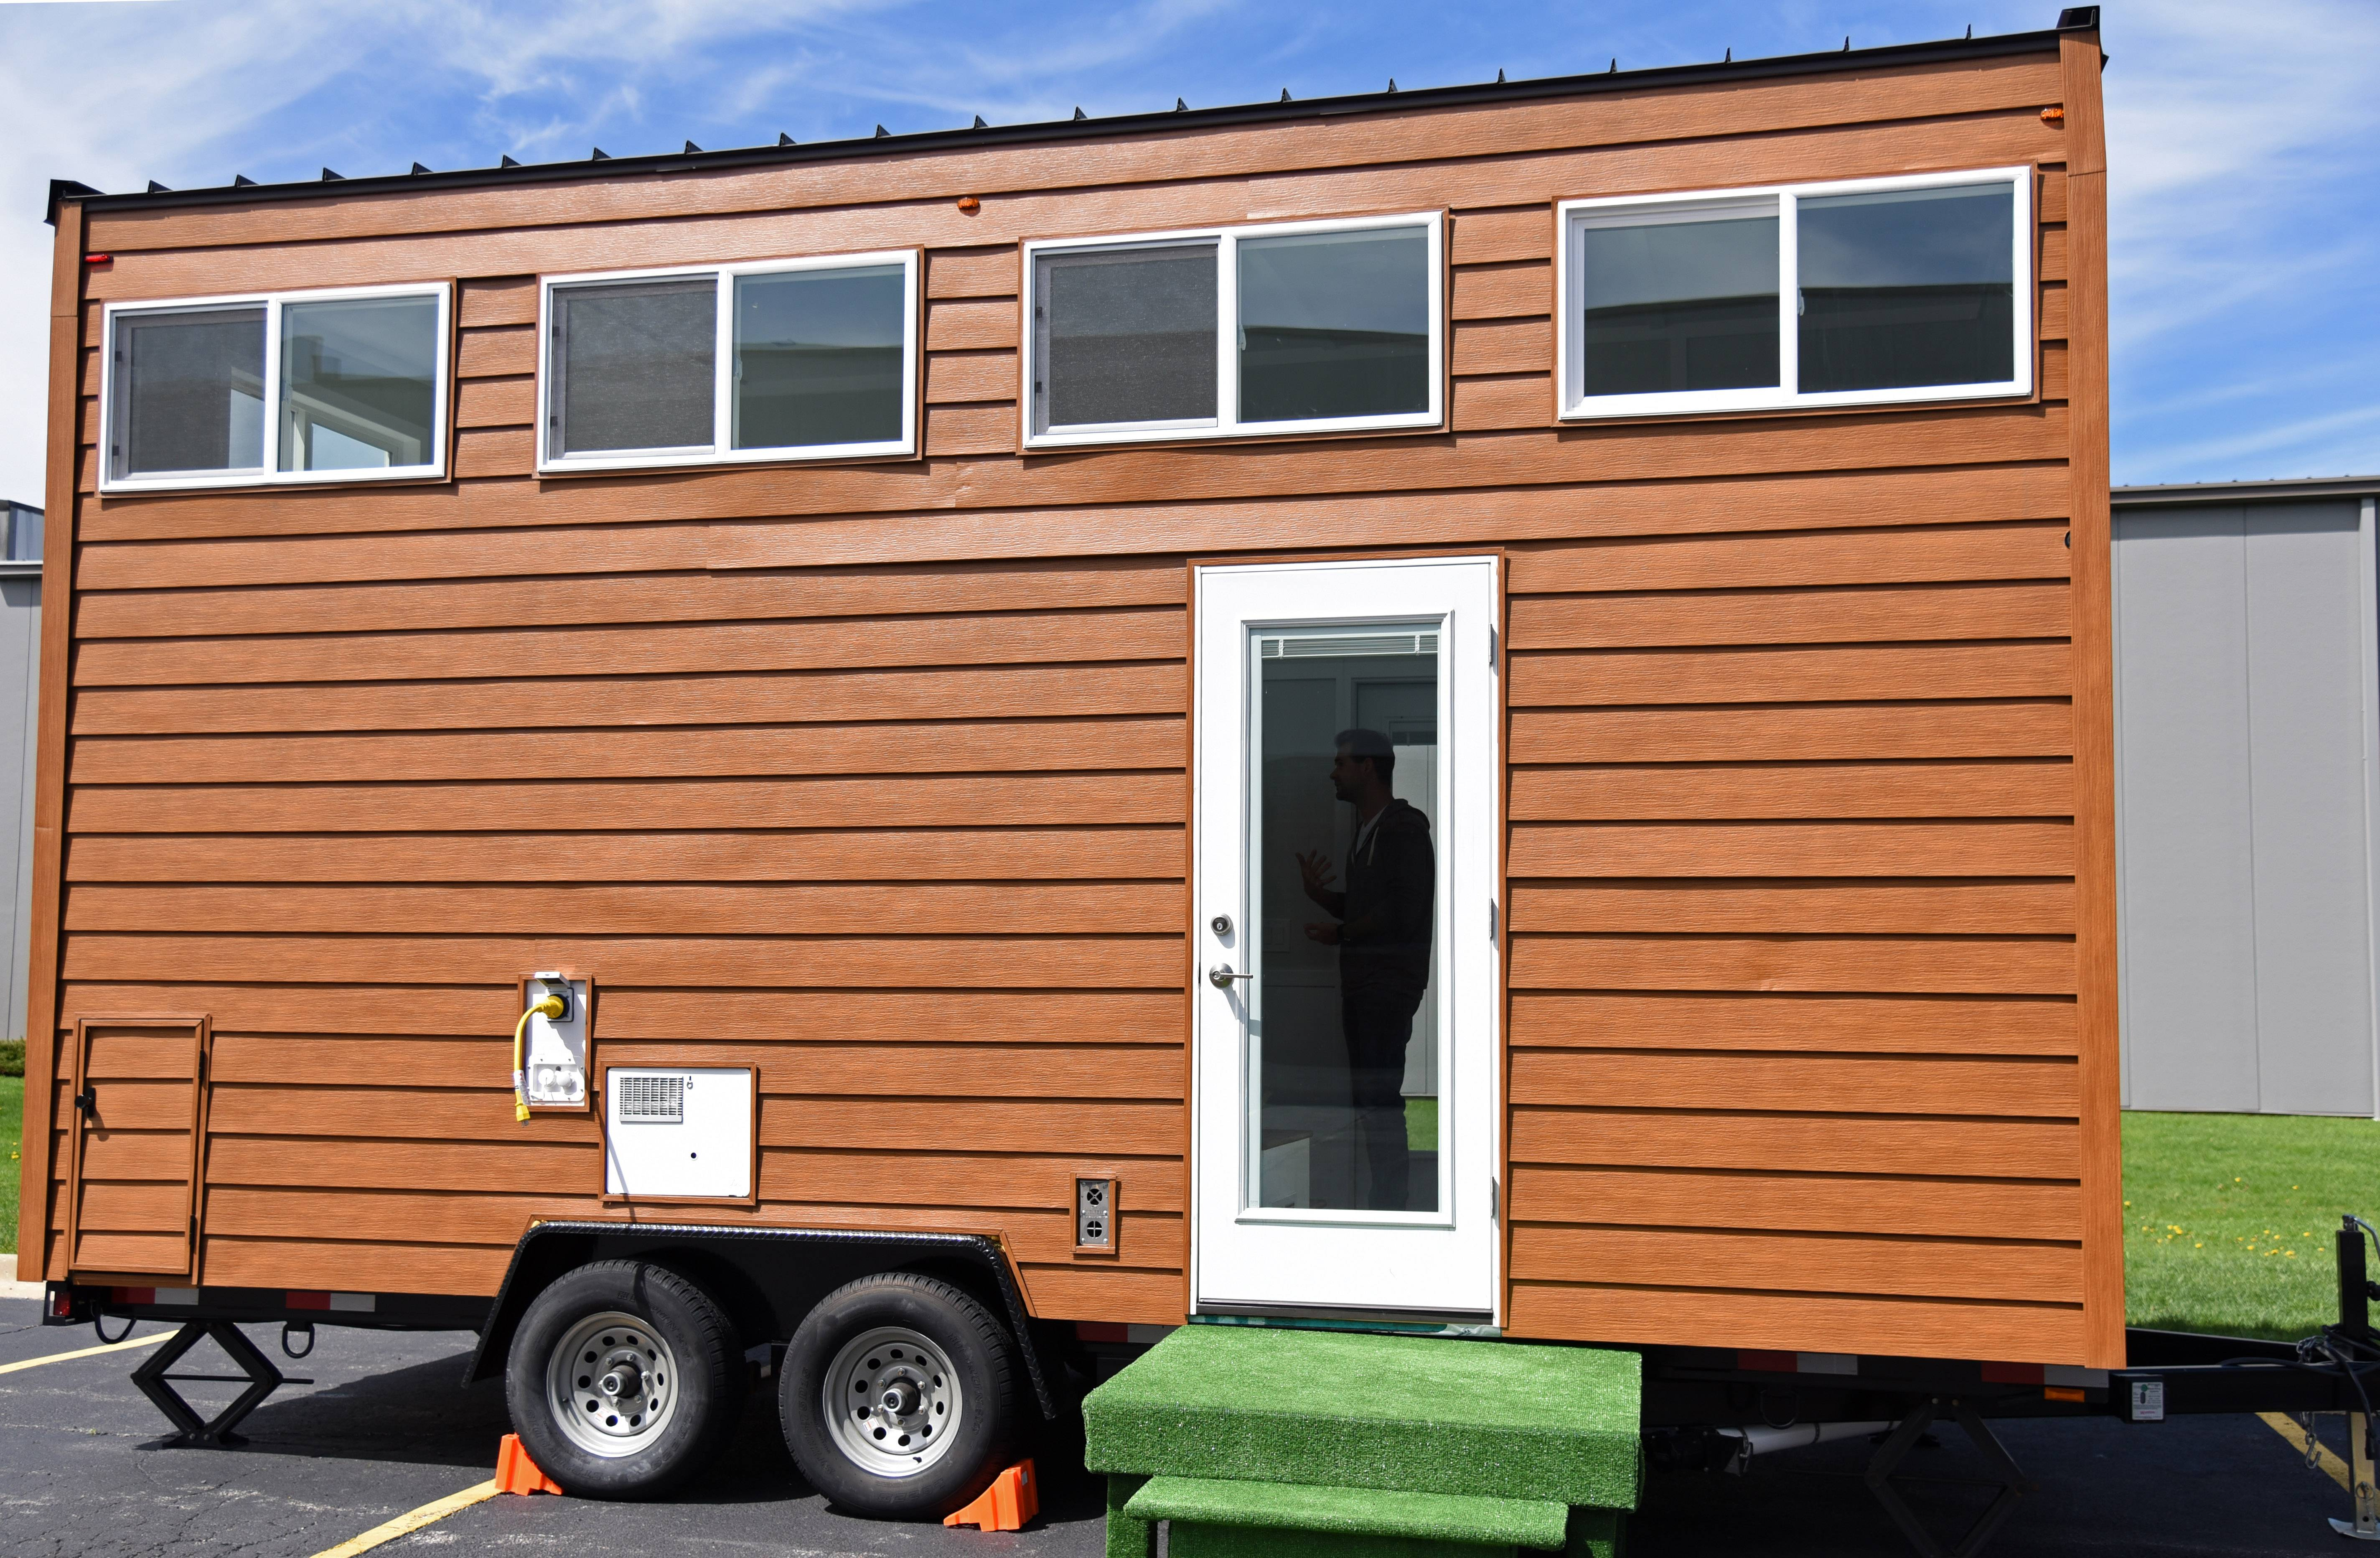 Tiny house pictures inside and outside